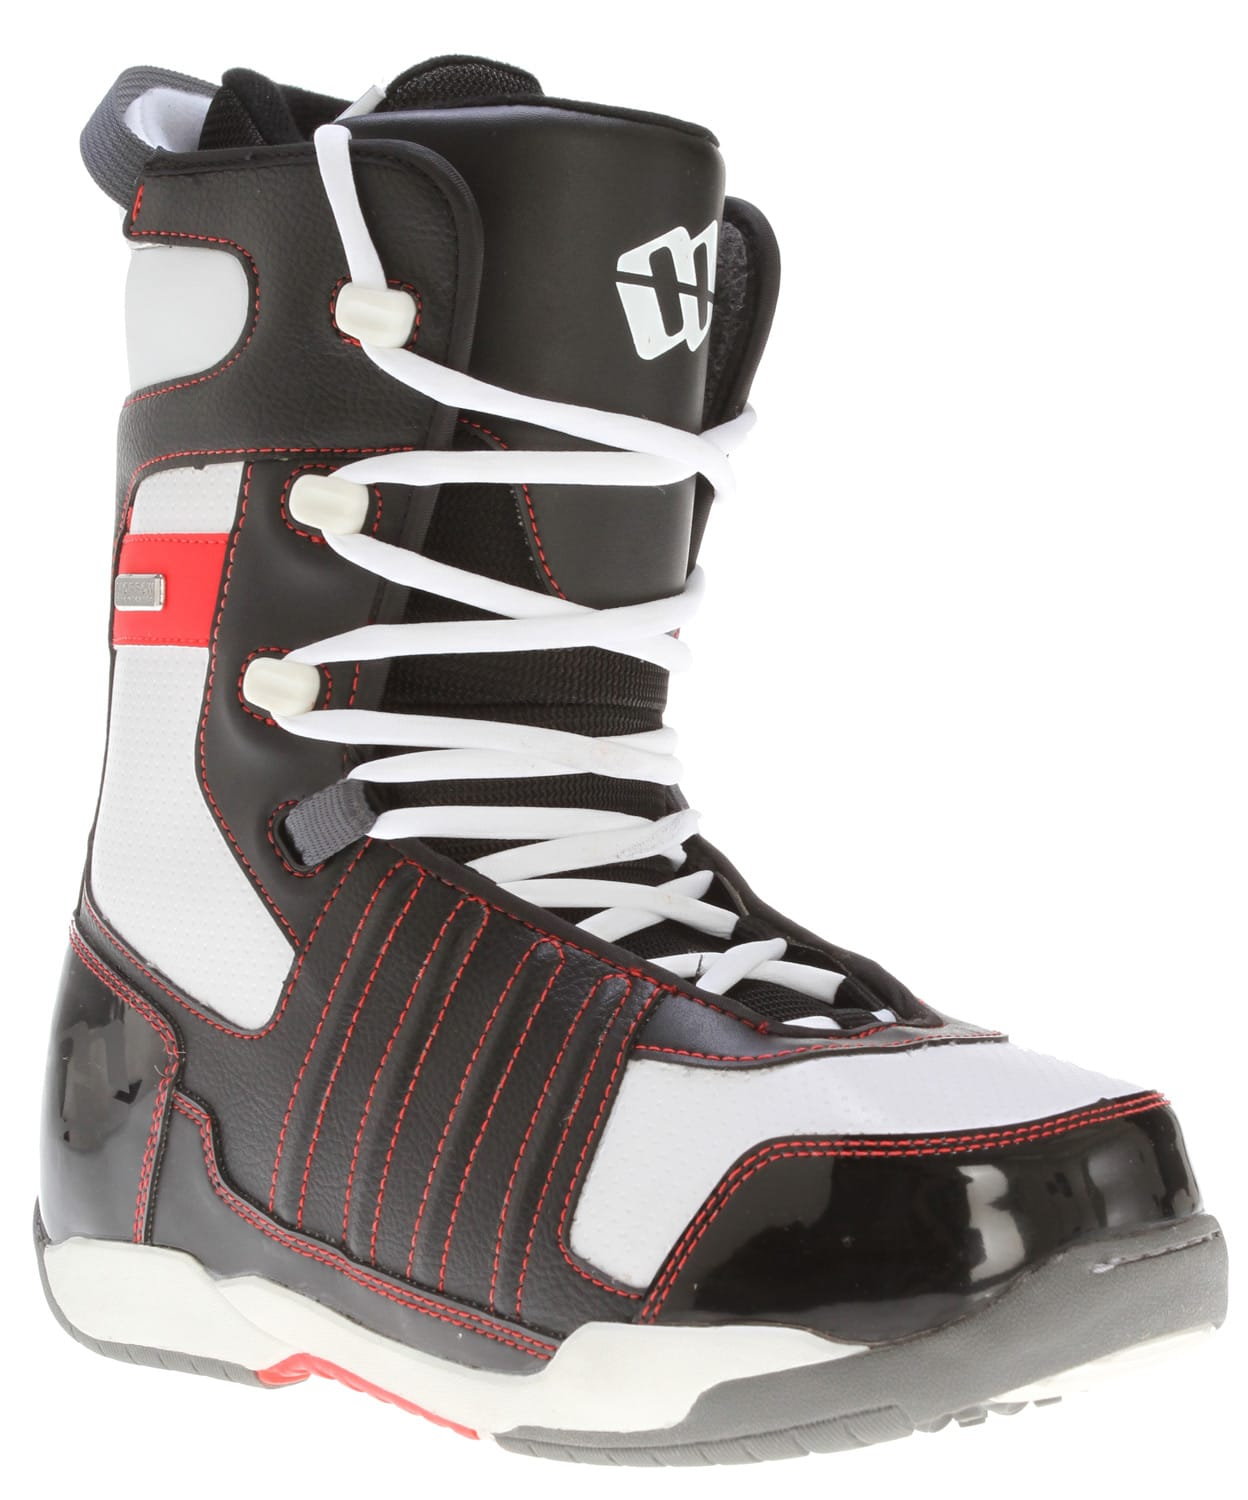 on sale morrow snowboard boots up to 65